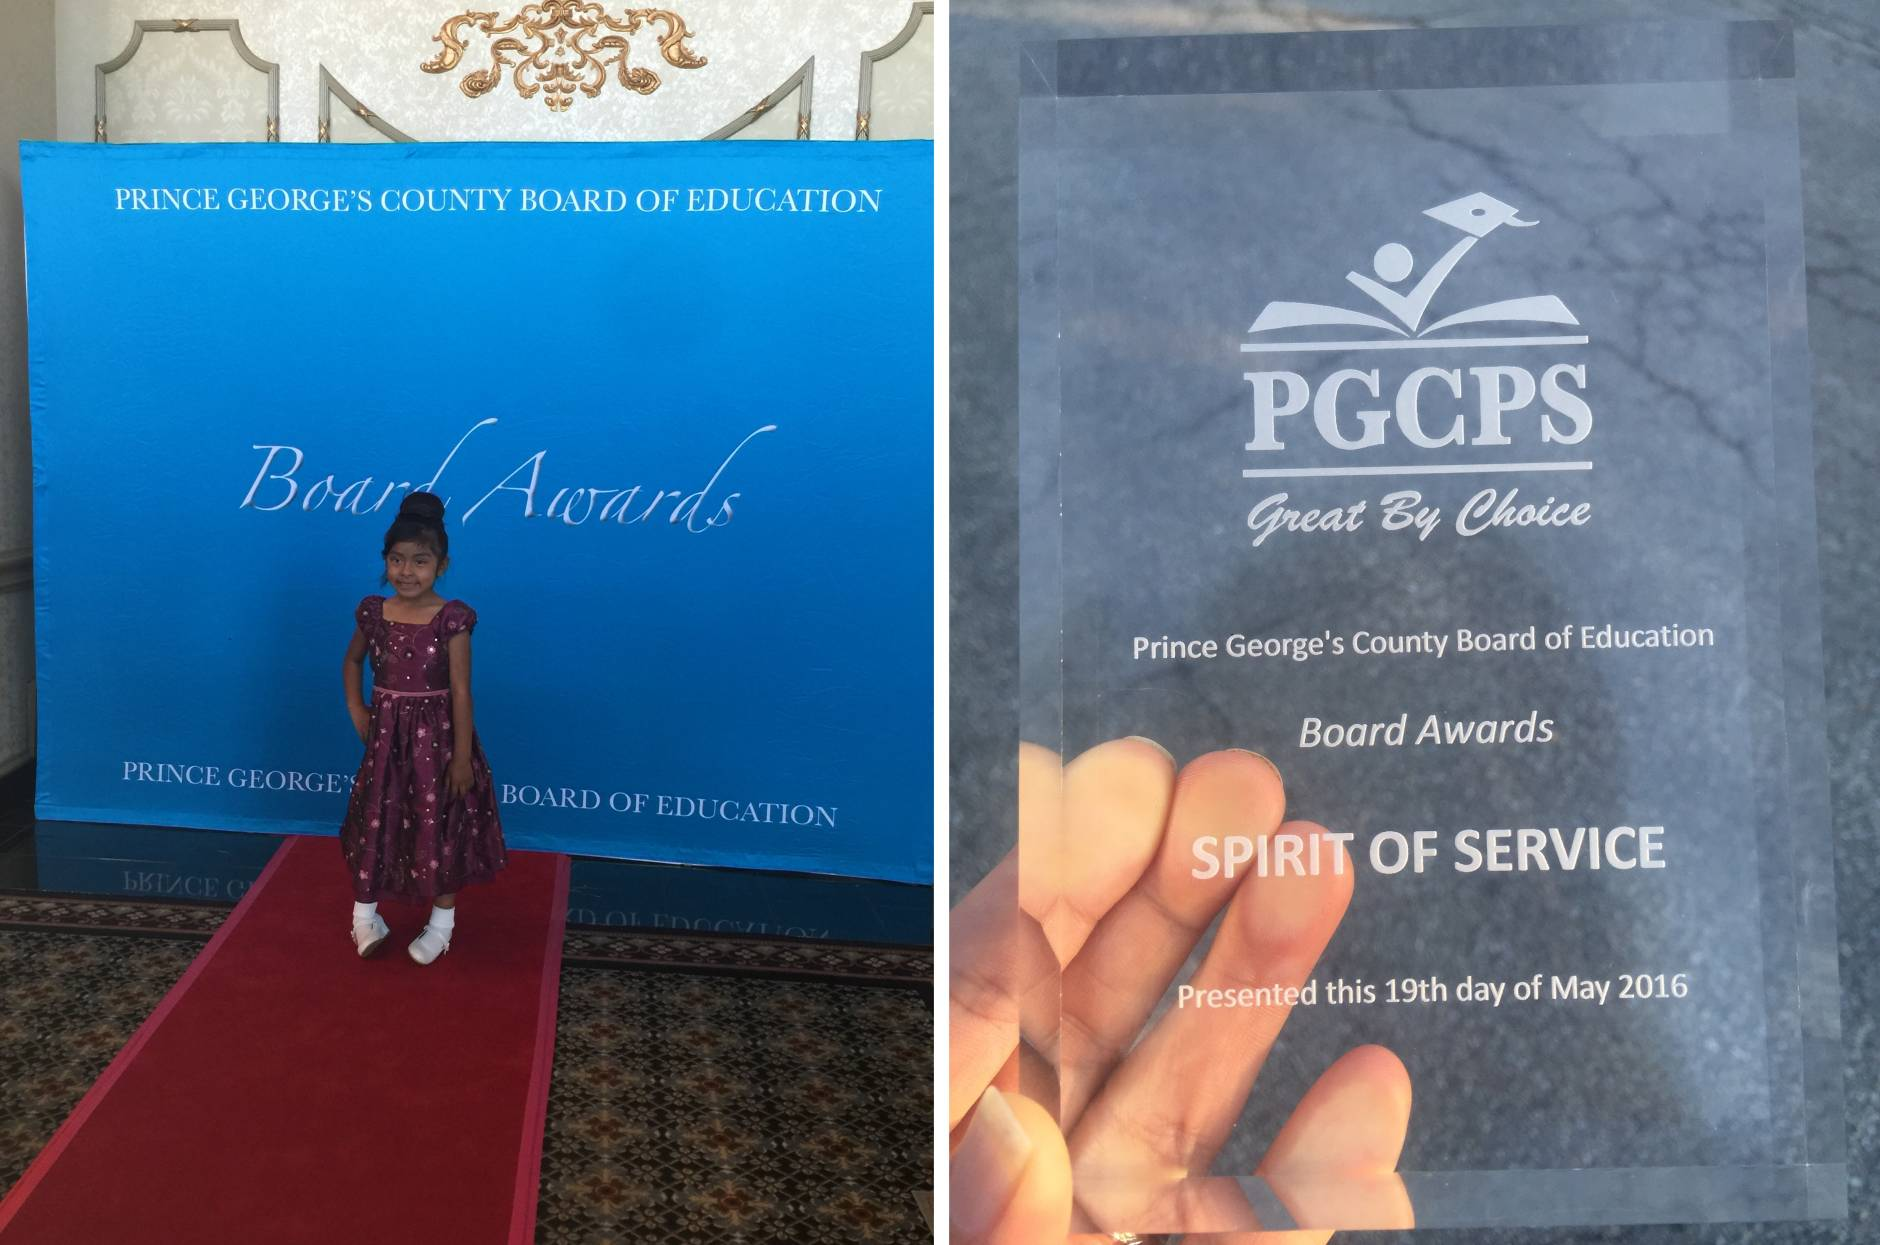 Yvonne Reyes, a first grade student at Beacon Heights Elementary School in Prince George's County,  was nominated by her Kindergarten teacher for the Spirit of Service Award at the School District's annual Board Awards. (Courtesy Daniela Bravo)